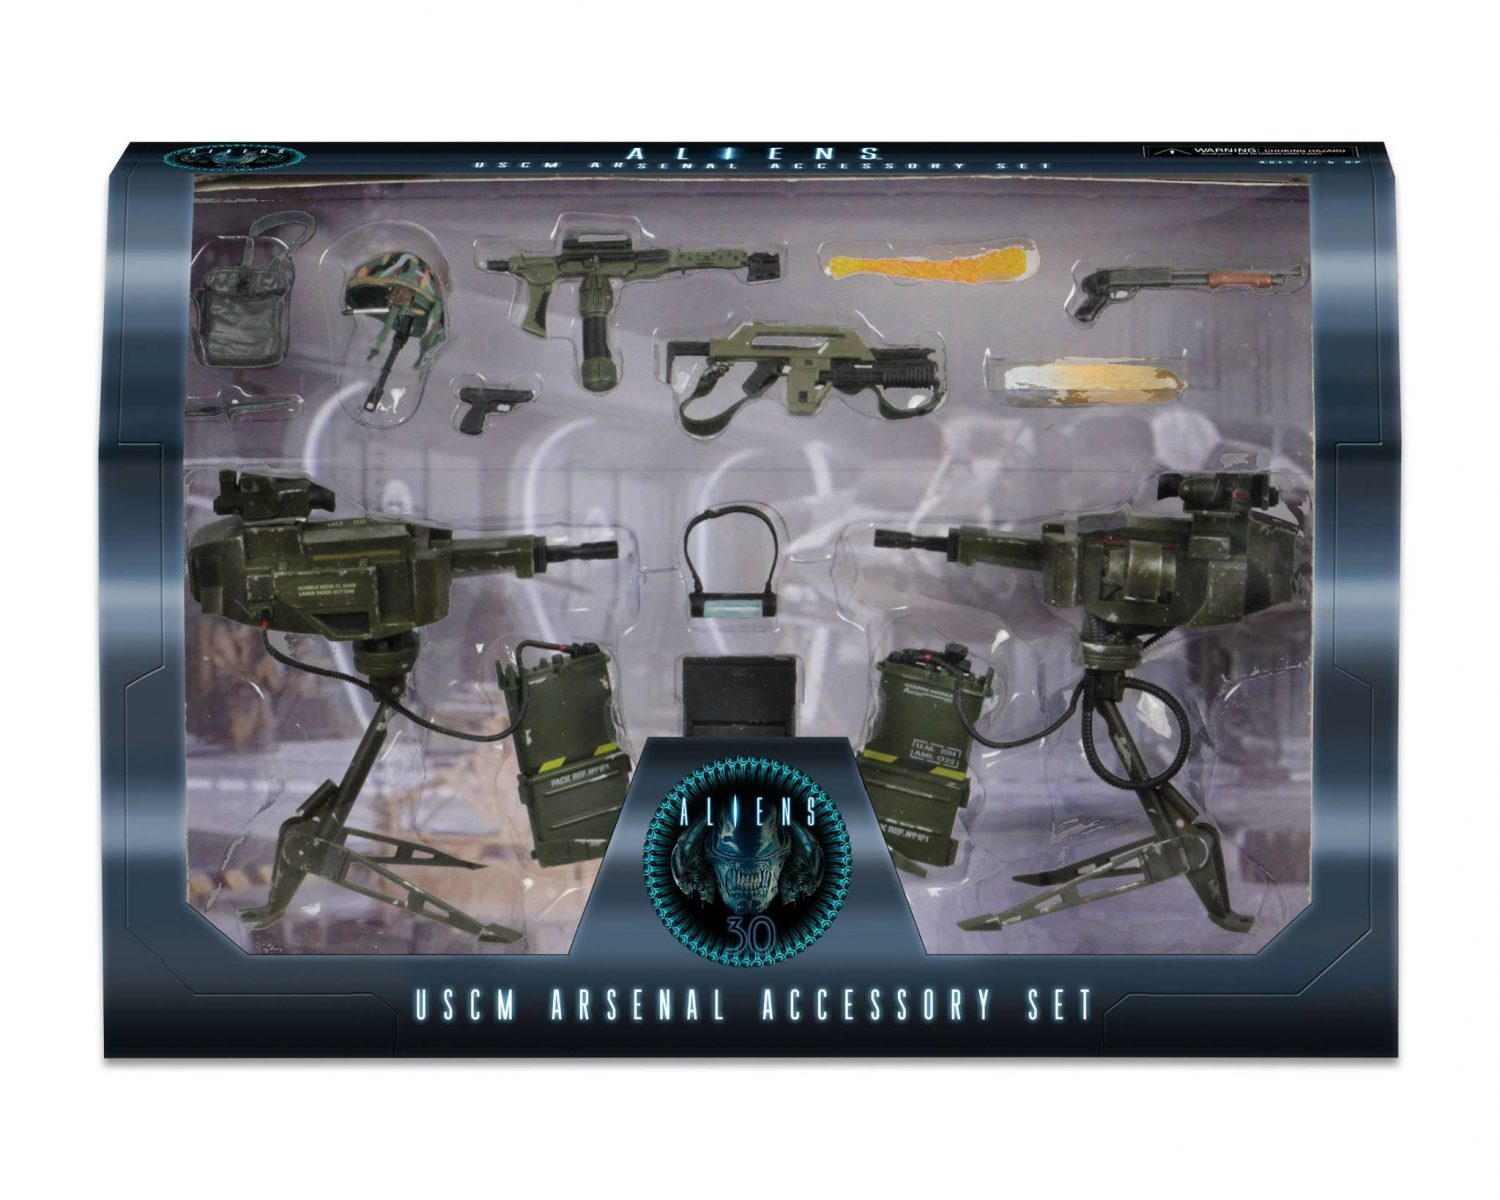 NECA Toys Shipping This Week – Aliens USCM Arsenal Accessory Set & Groot Foam Figure